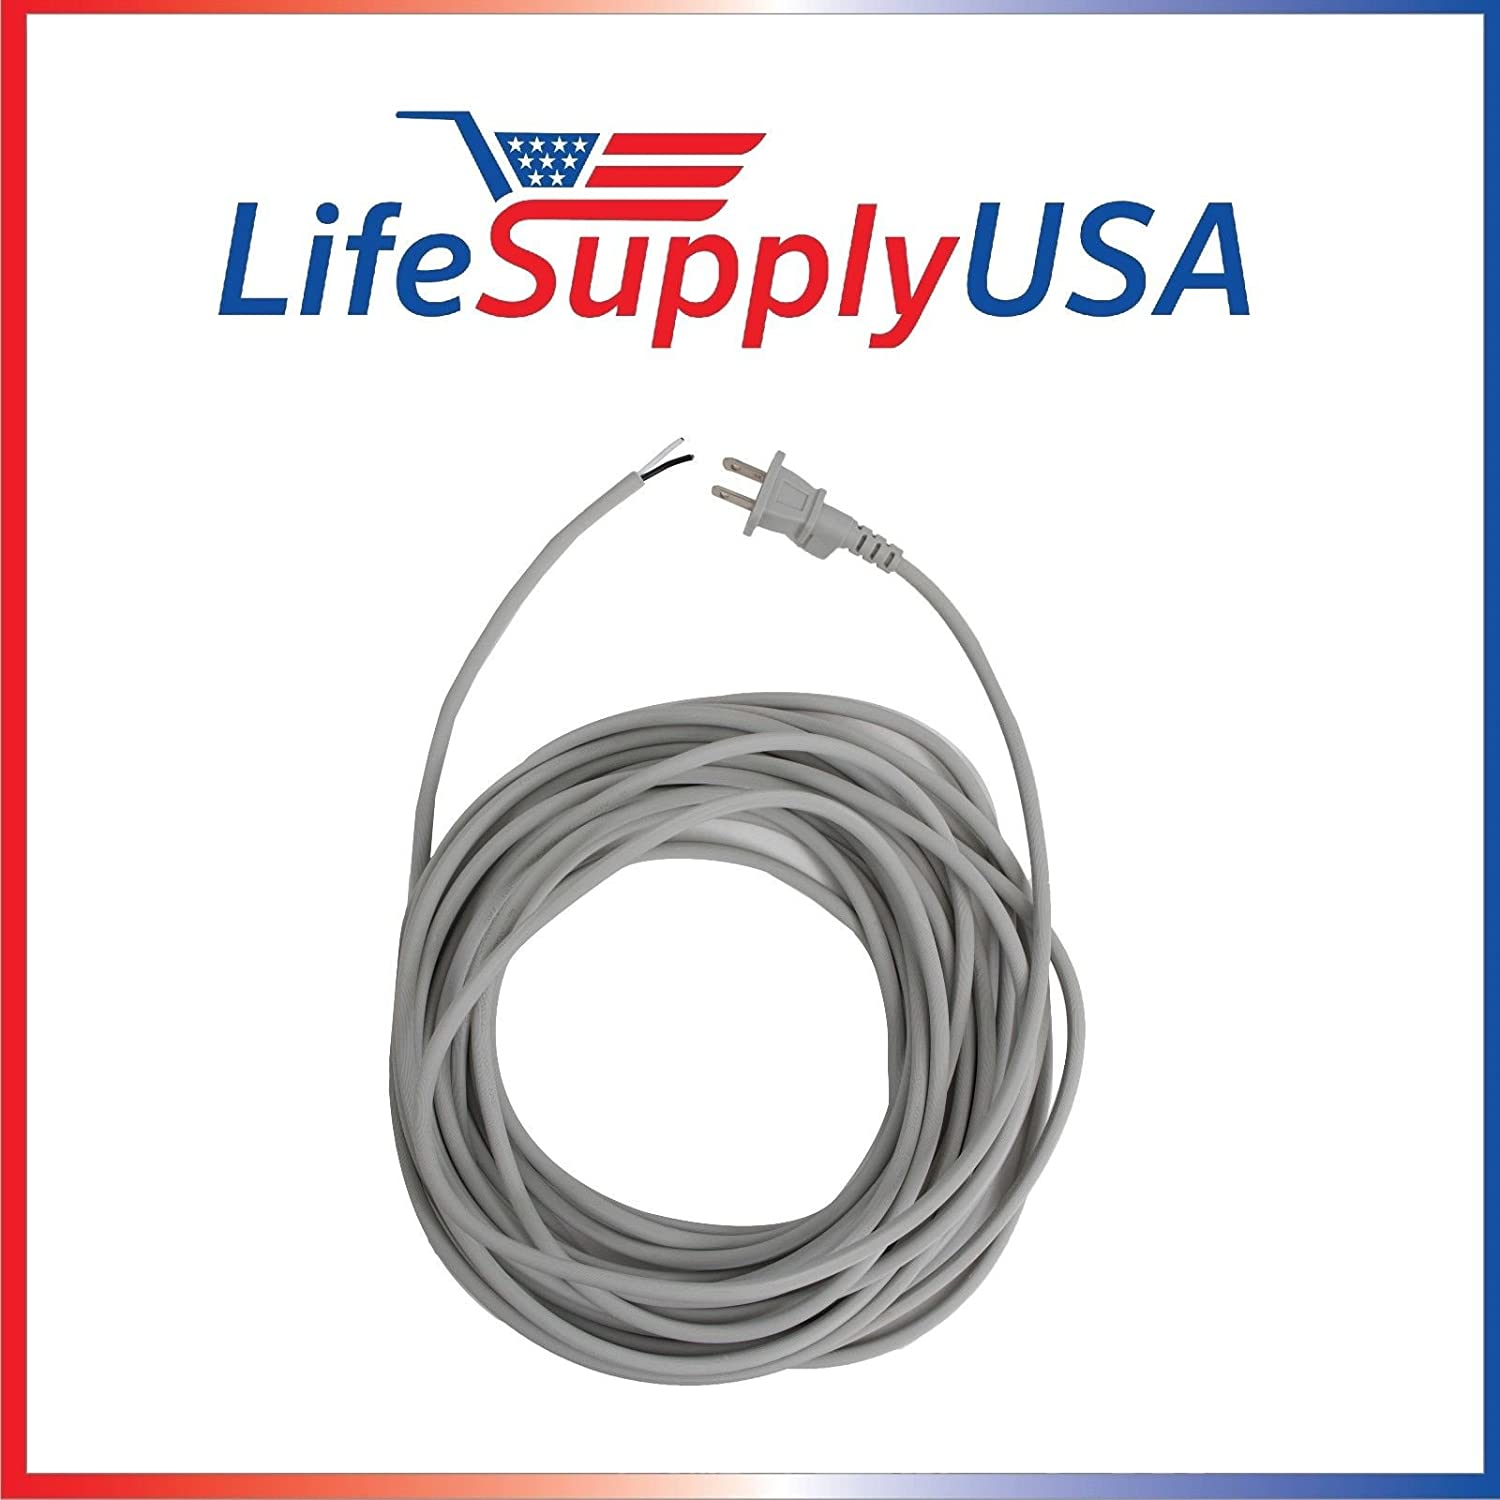 Gray 17/2 35ft Upright Vacuum Electric 12 Amp Power Supply Cord with Open End Striped Wire (35 feet) Grey